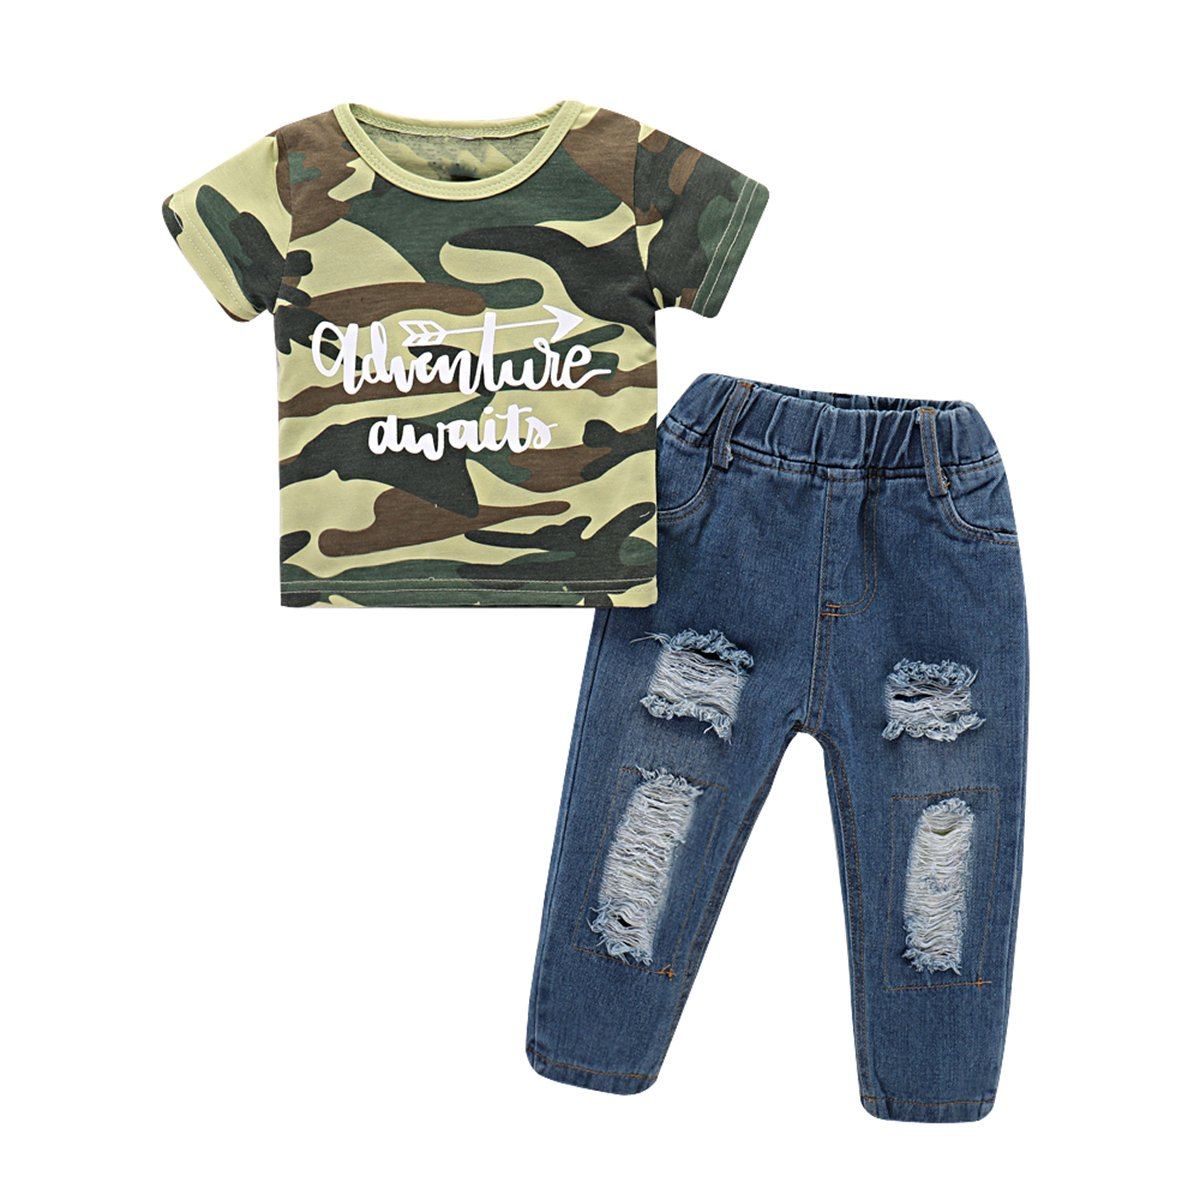 2pcs Baby Boy Short Sleeve Camo T shirt + Ripped Jeans Clothes Set